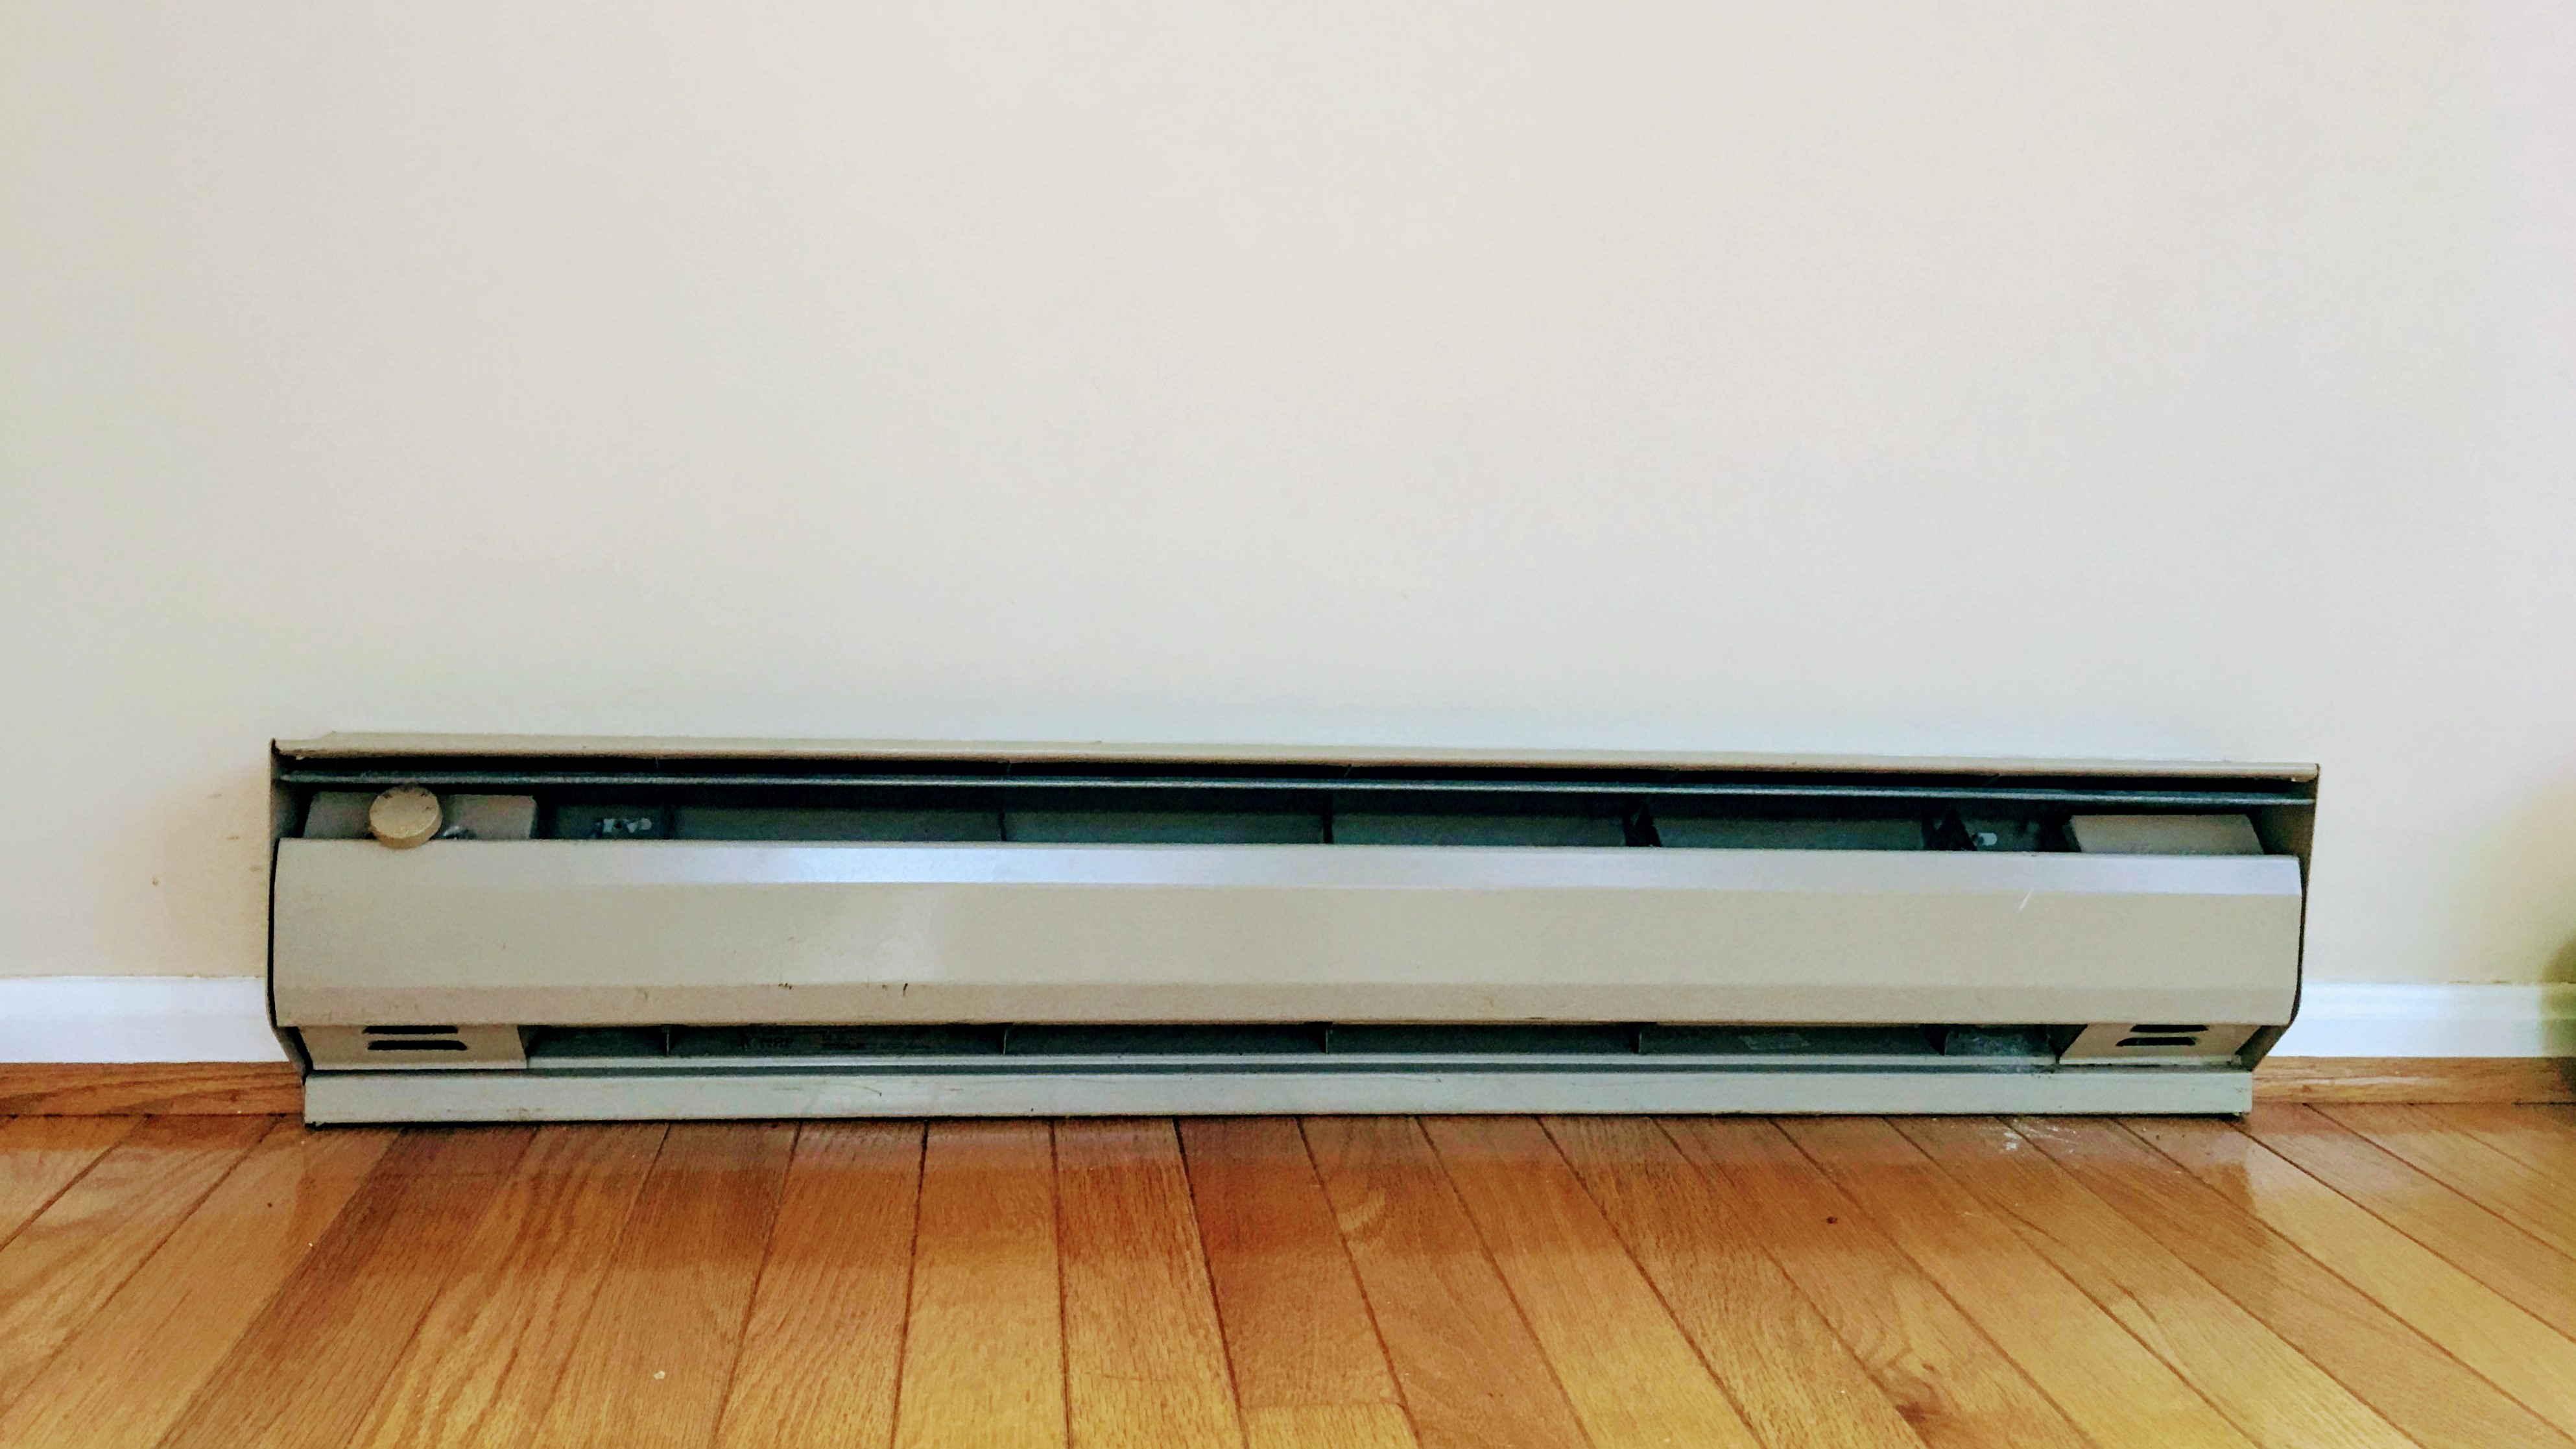 Fixing noisy baseboard heaters - the Ultimate Guide on Ecohome